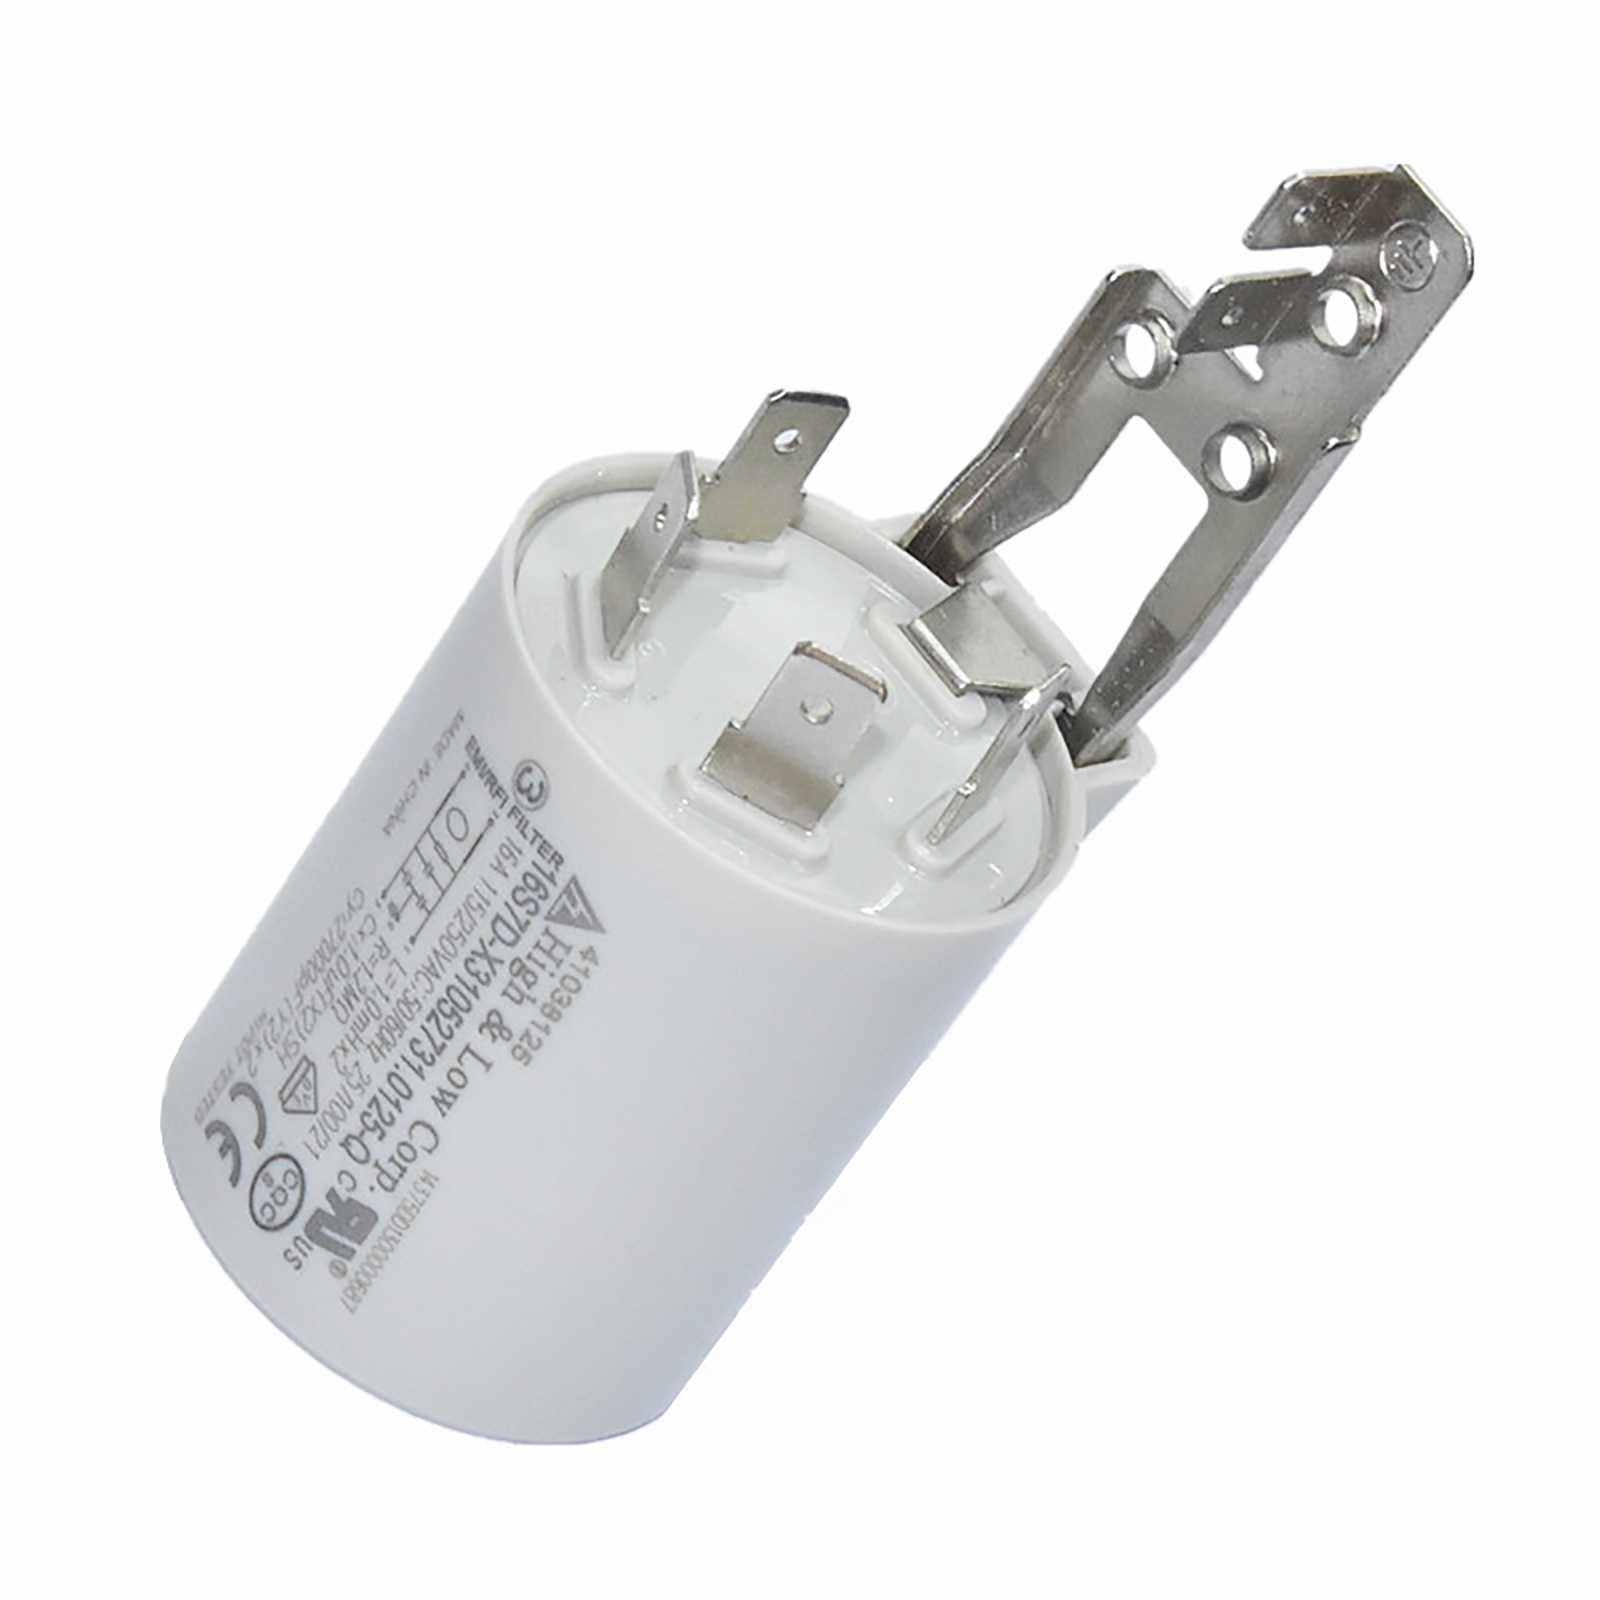 F4338-2//0024000247 Washing Machine Filter Interference Suppressor Capacitor 16A